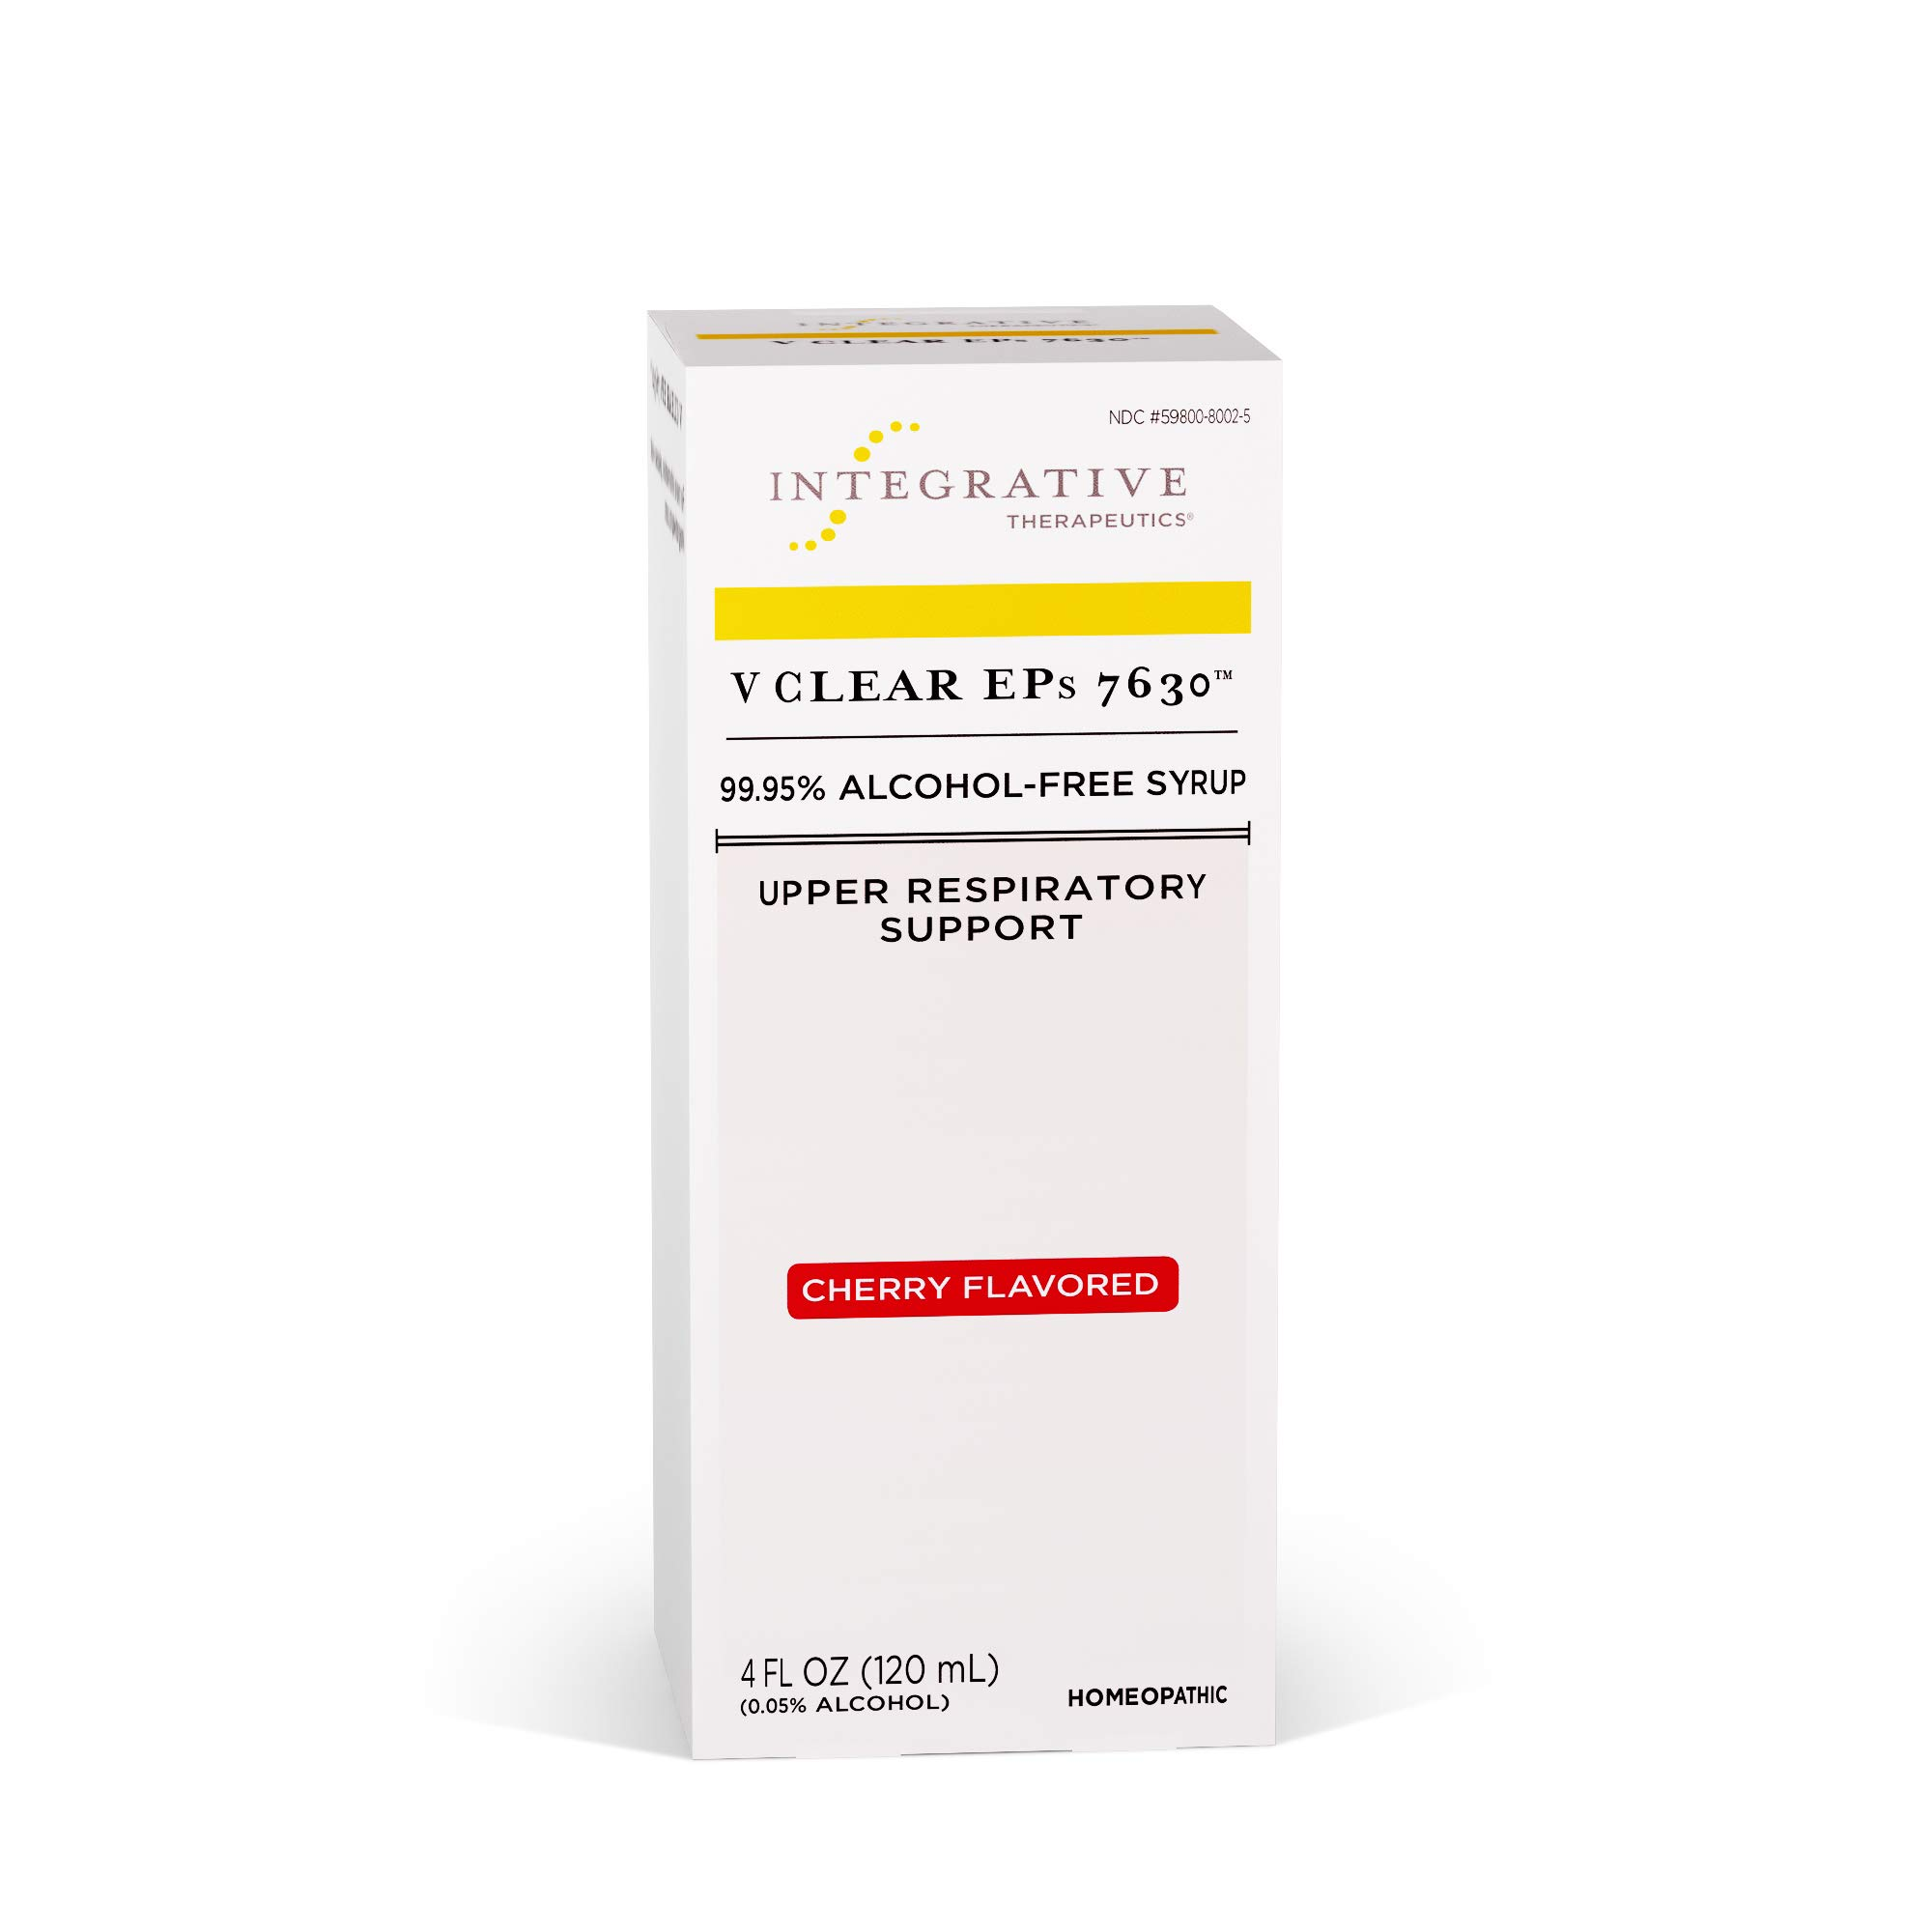 Integrative Therapeutics - V Clear EPs 7630 - Homeopathic Cold Medicine - Upper Respiratory and Lung Health Support - 99.95% Alcohol-Free Syrup - Cherry Flavored for Children and Adults - 4 fl oz by Integrative Therapeutics